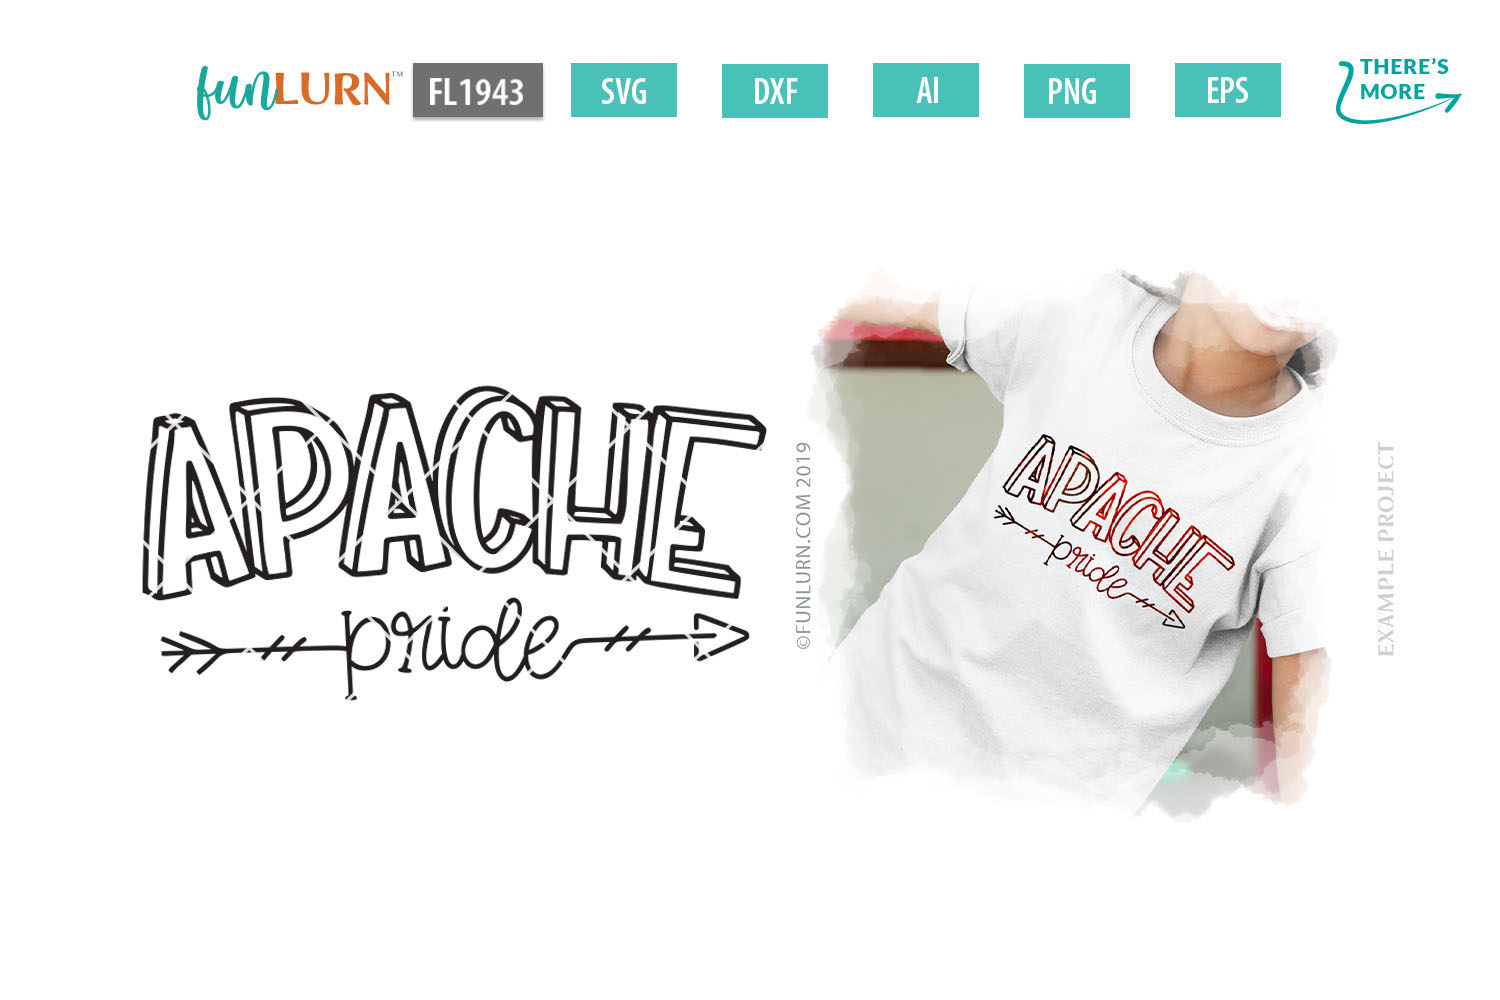 Apache Pride Team SVG Cut File example image 1